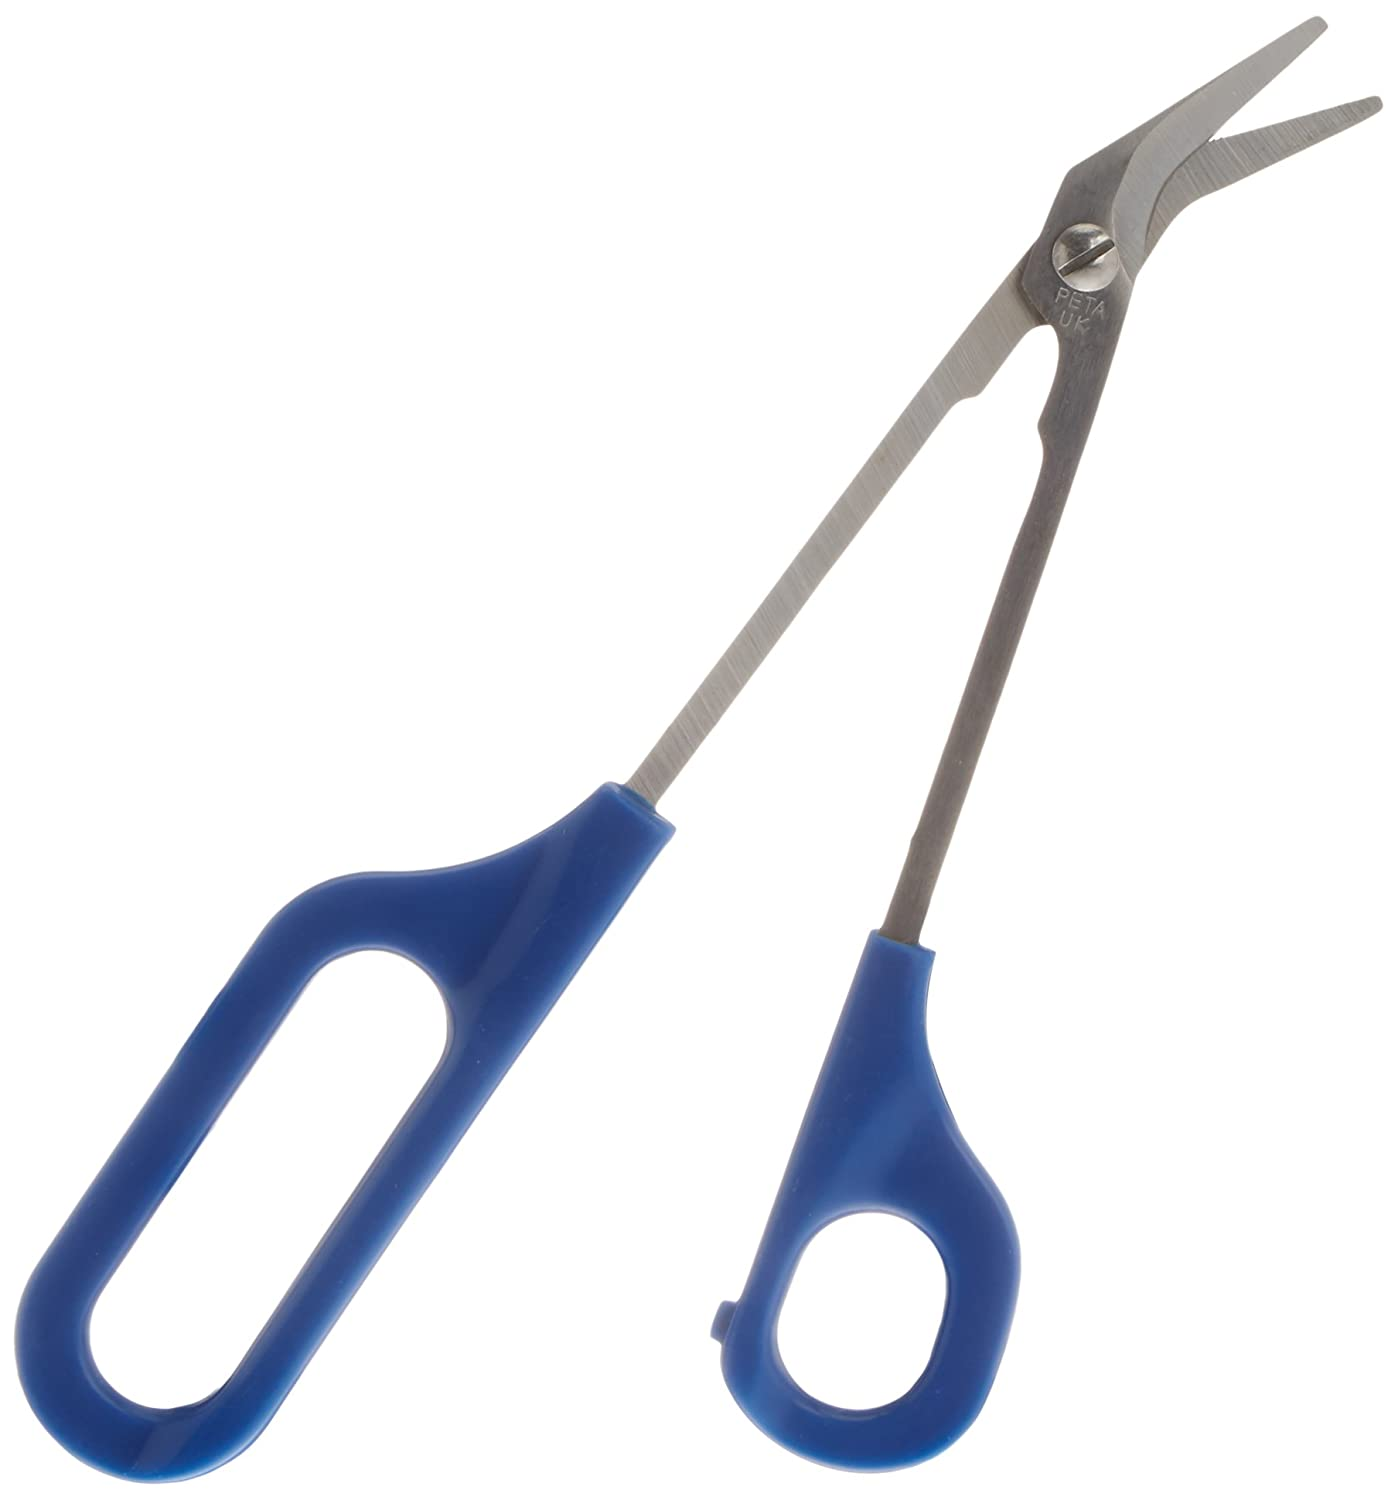 Homecraft Easi Grip Chiropody Scissors Patterson Medical 091102870